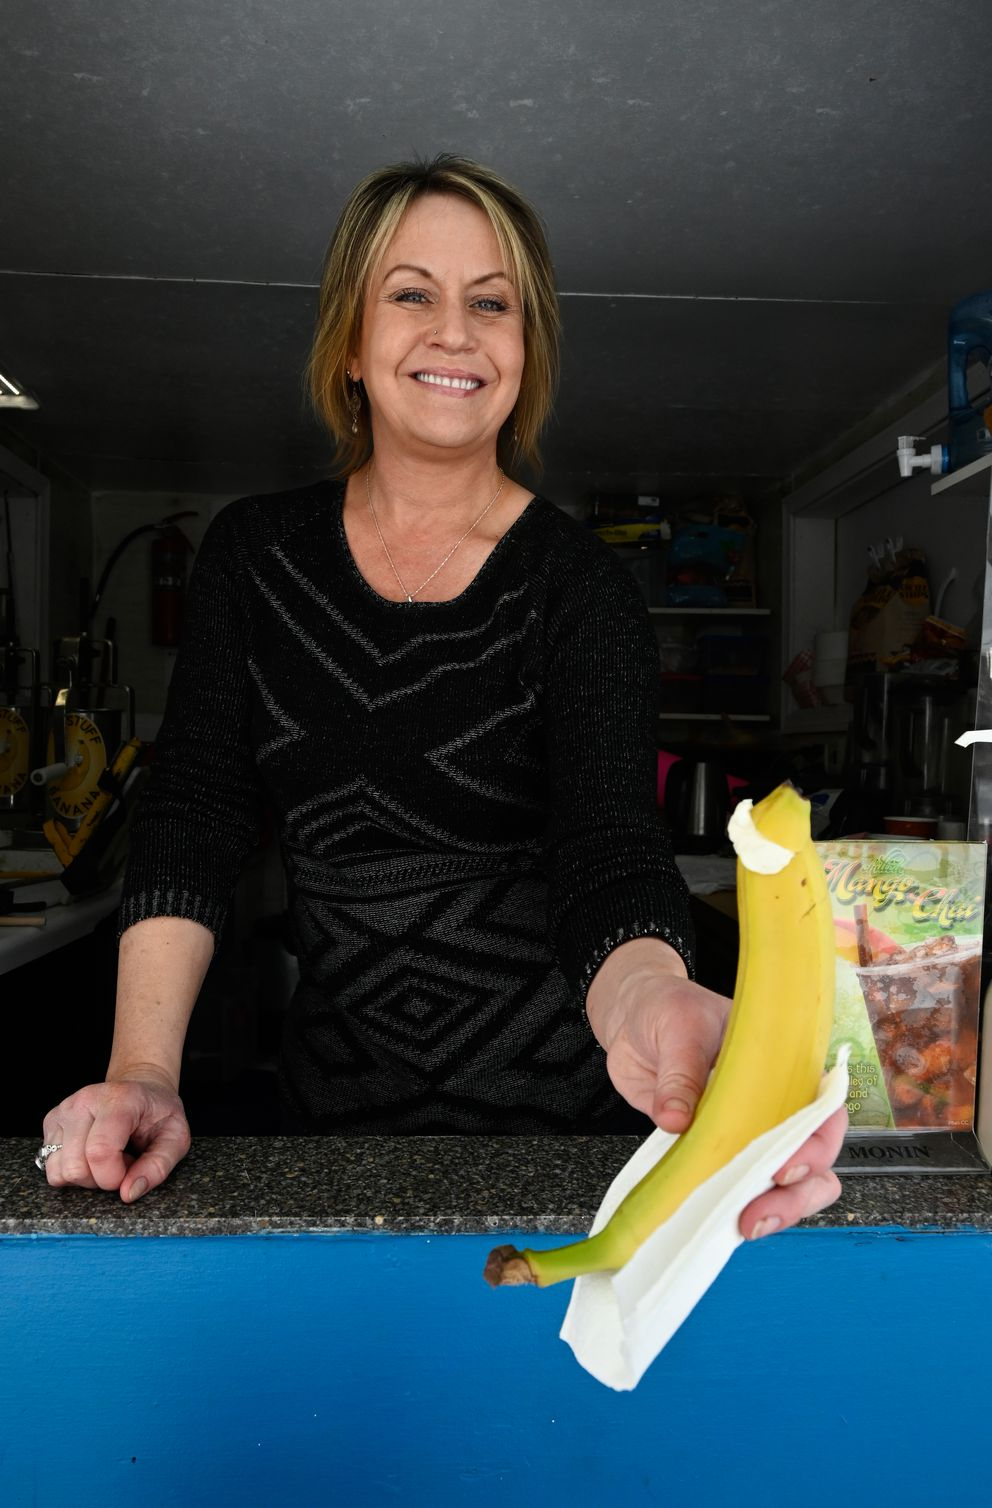 Karen House said the Nutella and cheesecake options are her best selling stuffed bananas. (Marc Lester / ADN)